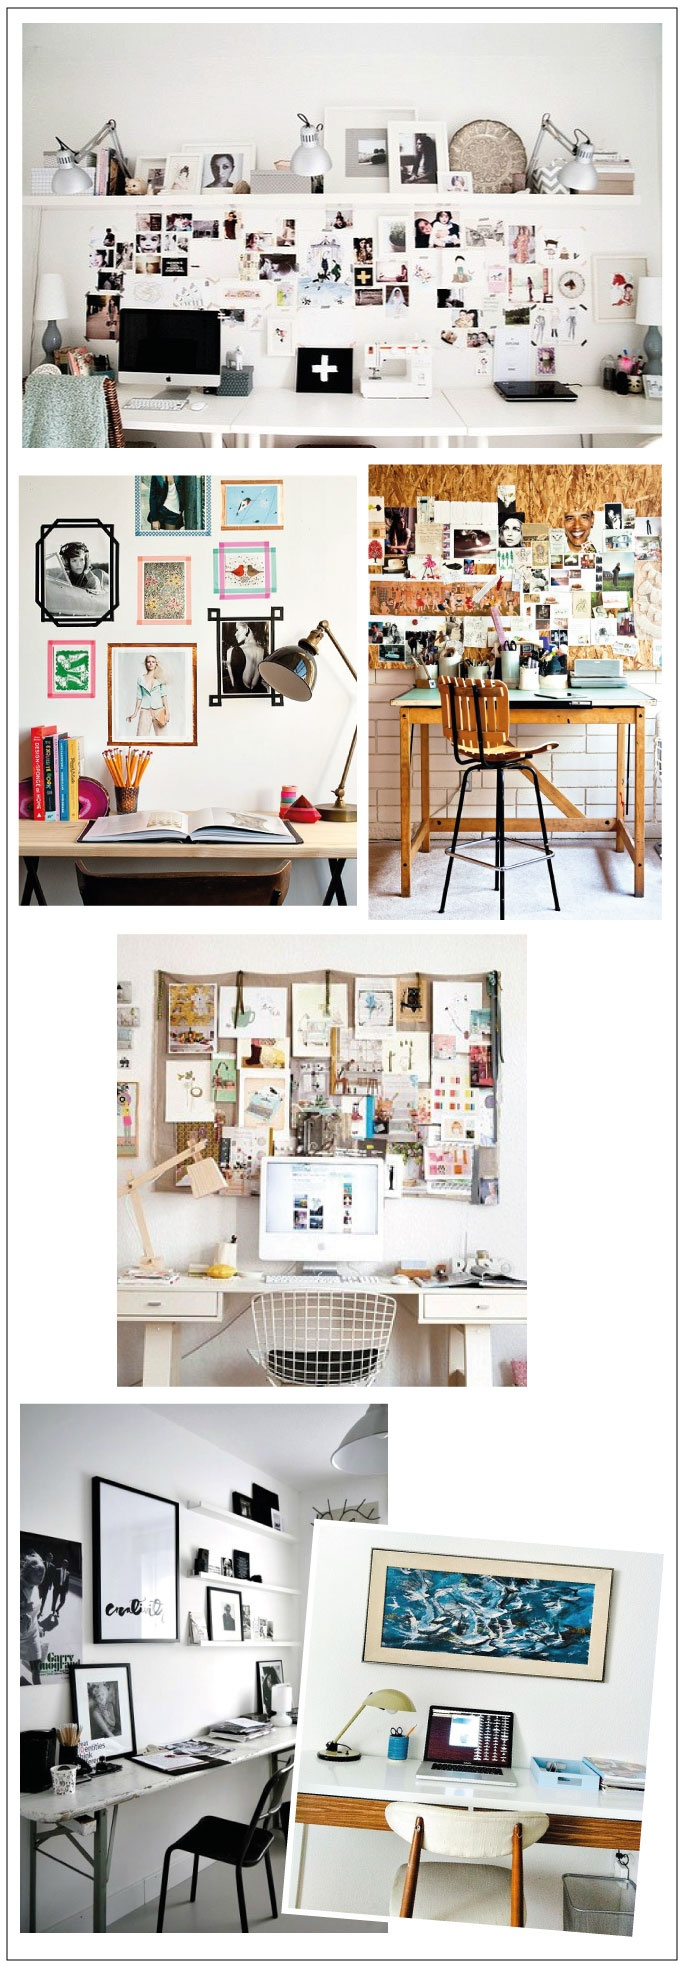 11 best Office images on Pinterest | Business office decor, Desk ...